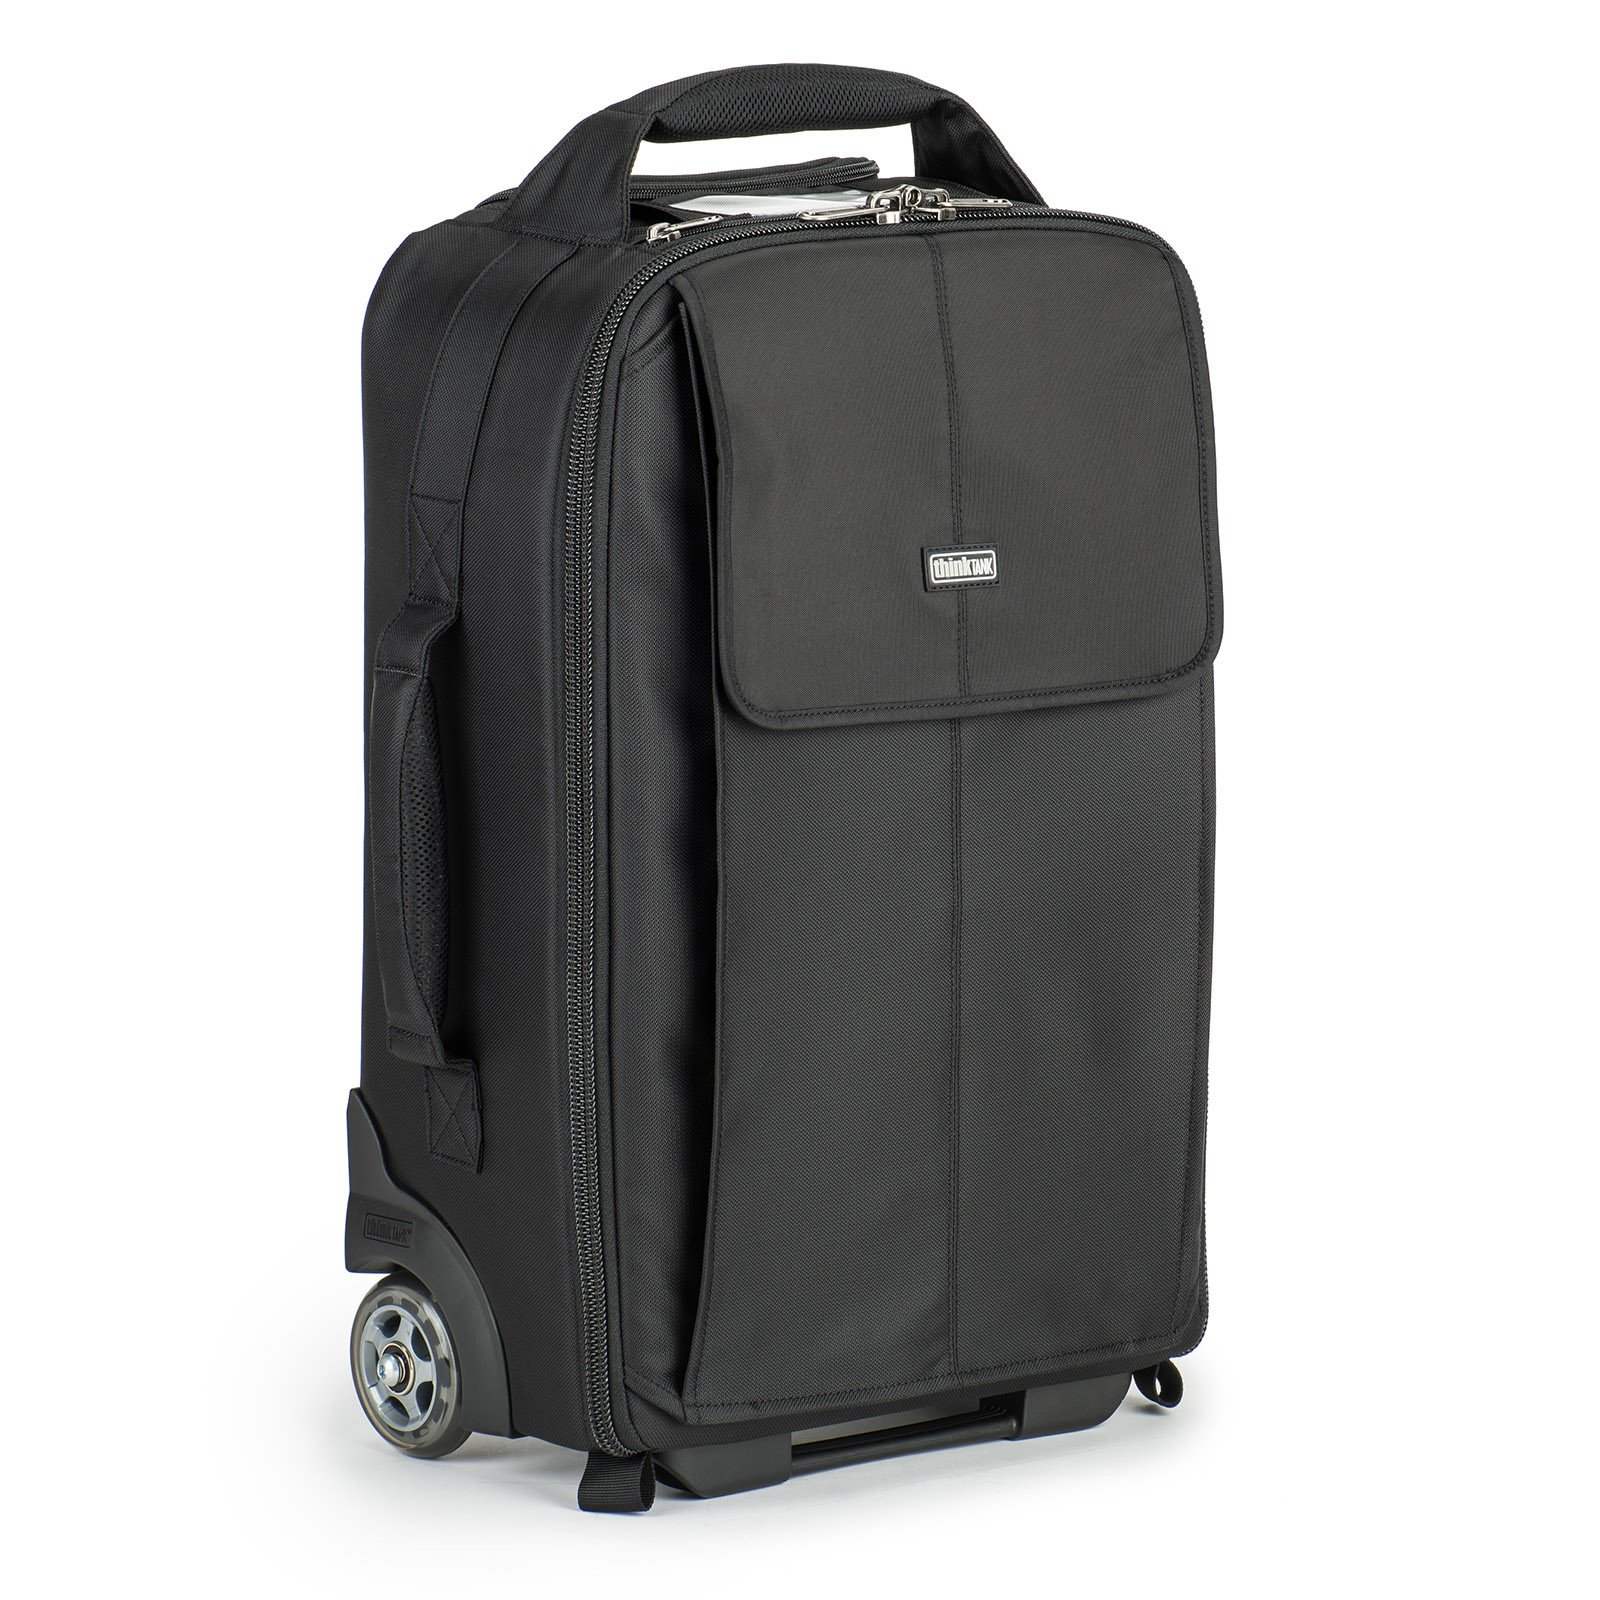 15% Off ThinkTank Rolling Cases